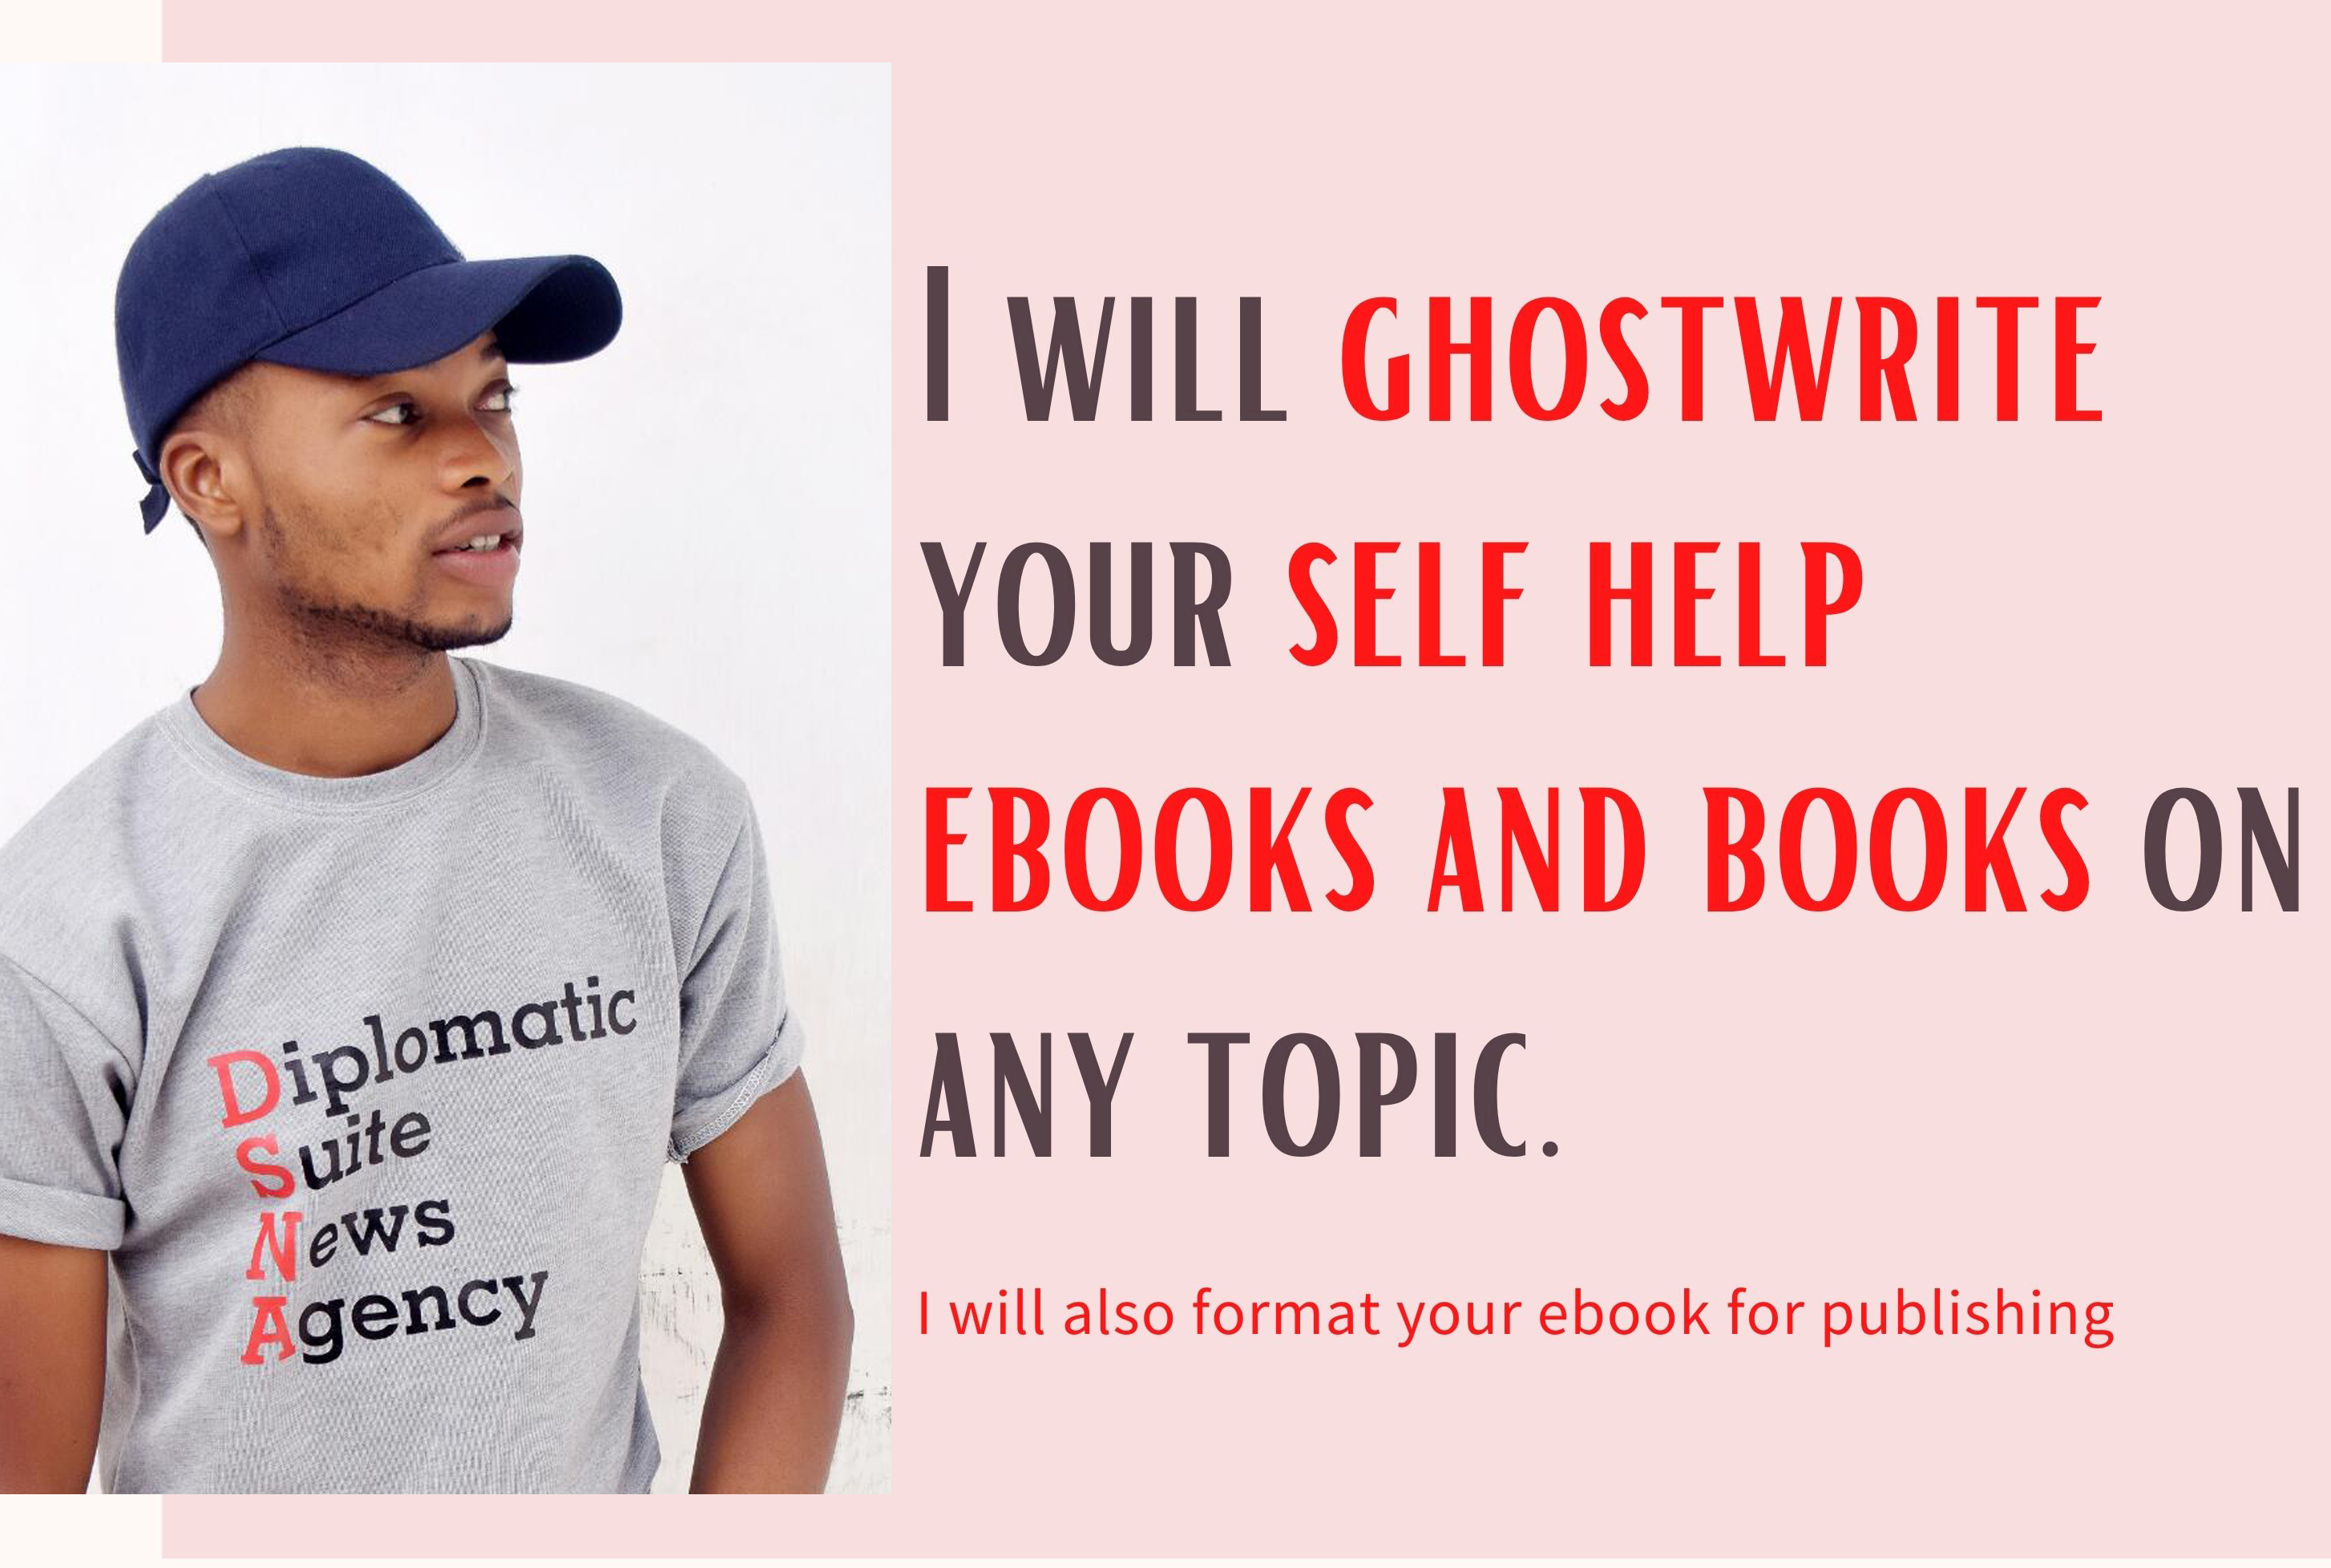 I will ghostwrite your books and do ebook writing